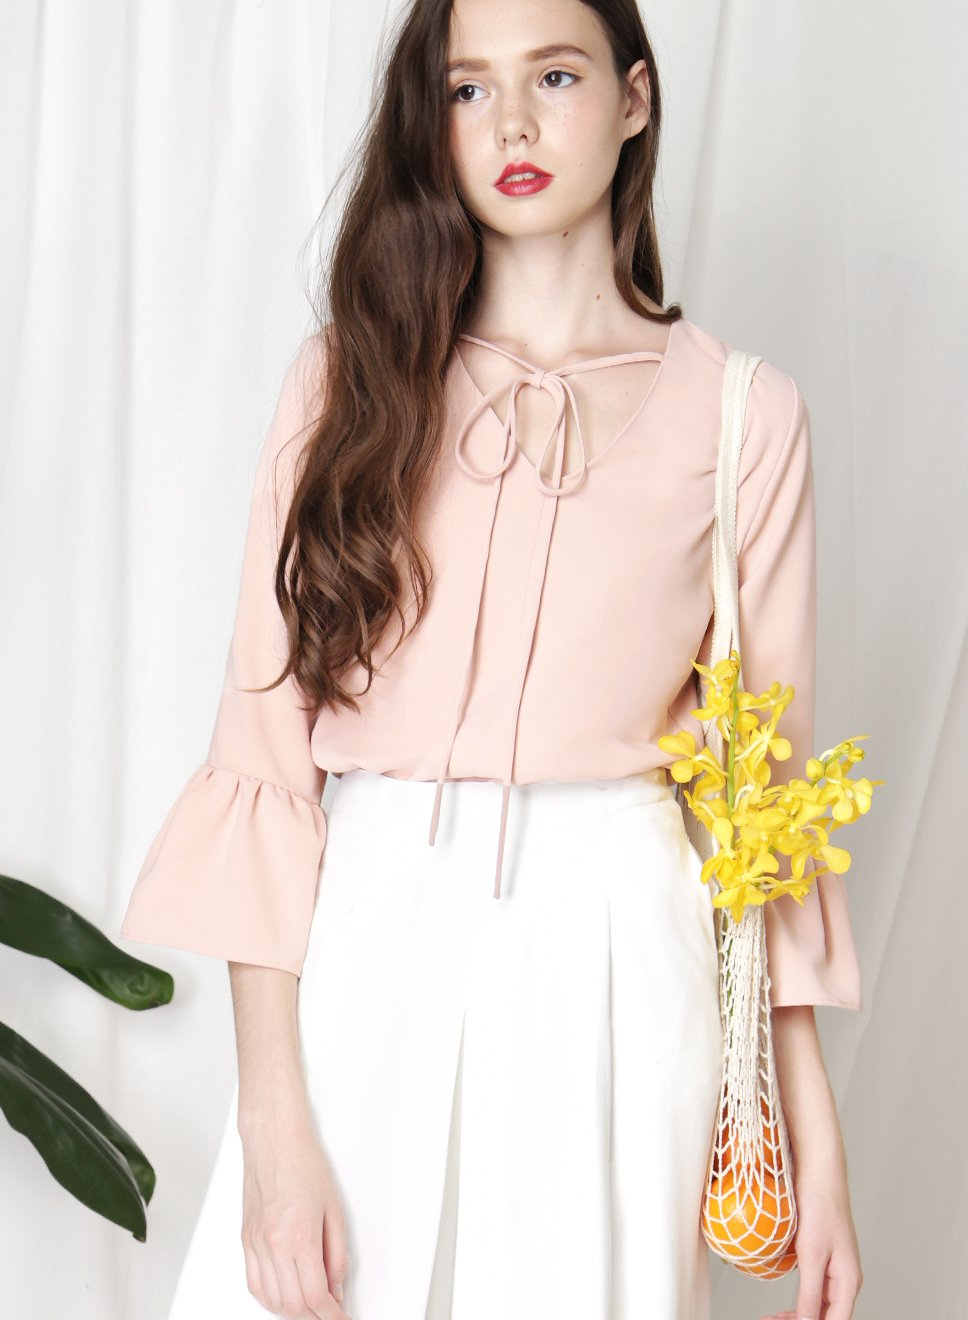 PARADOX Ruffle Hem Sleeves Top (Blush) at $ 34.50 only sold at And Well Dressed Online Fashion Store Singapore